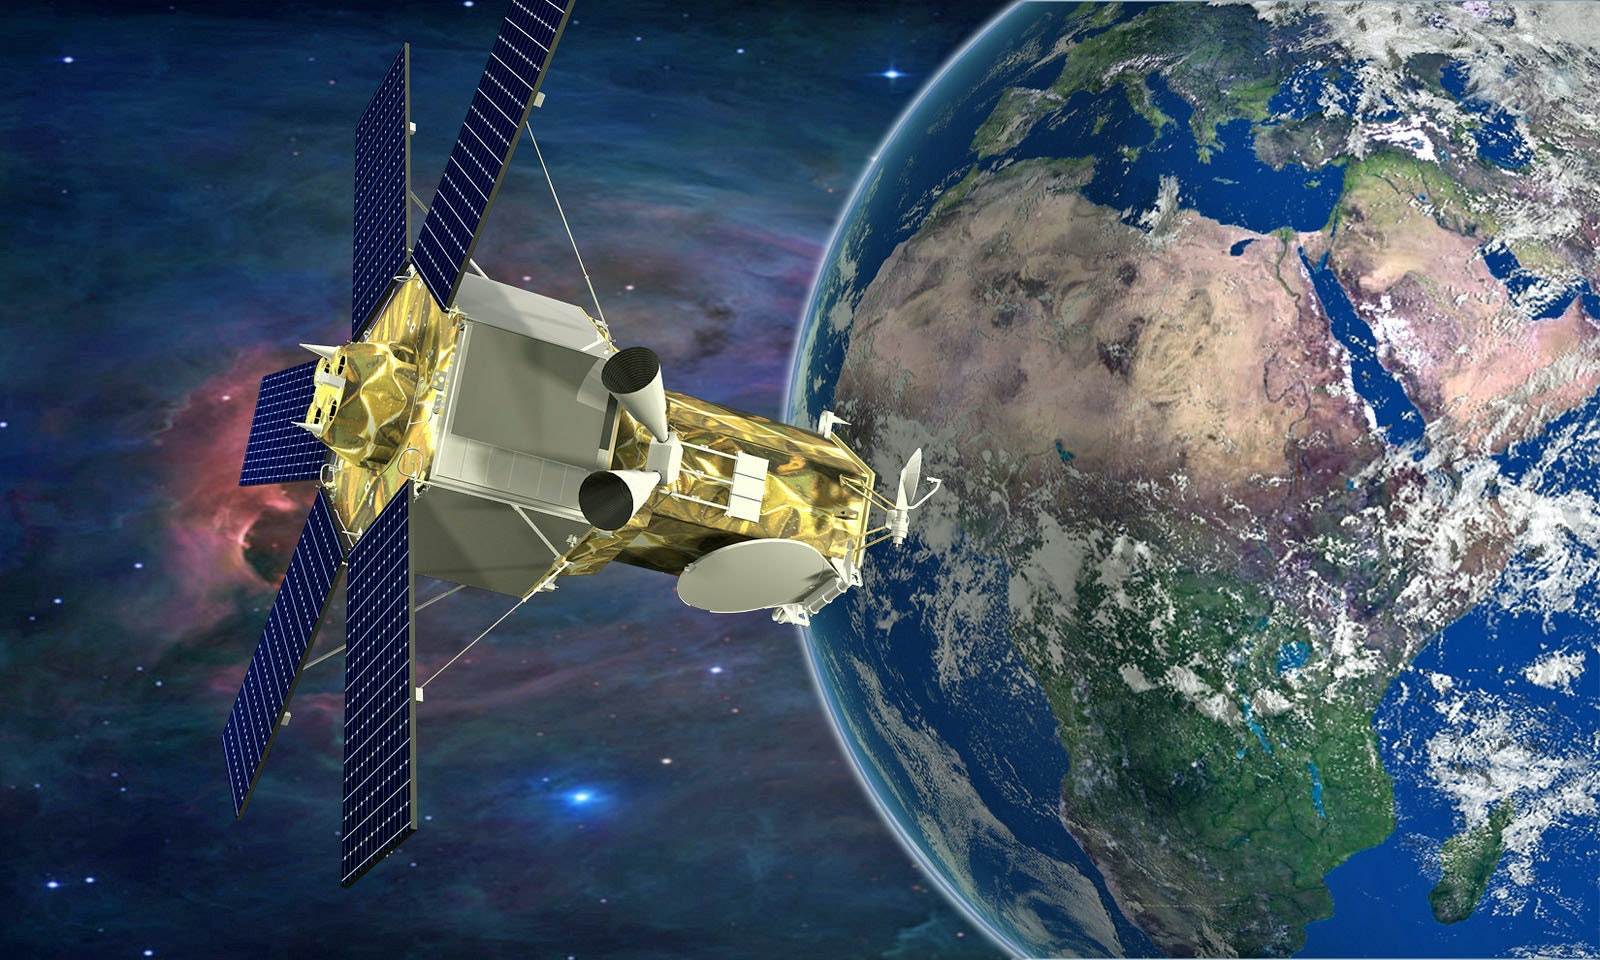 Artist rendition of the WorldView-4 satellite looking at the Earth.